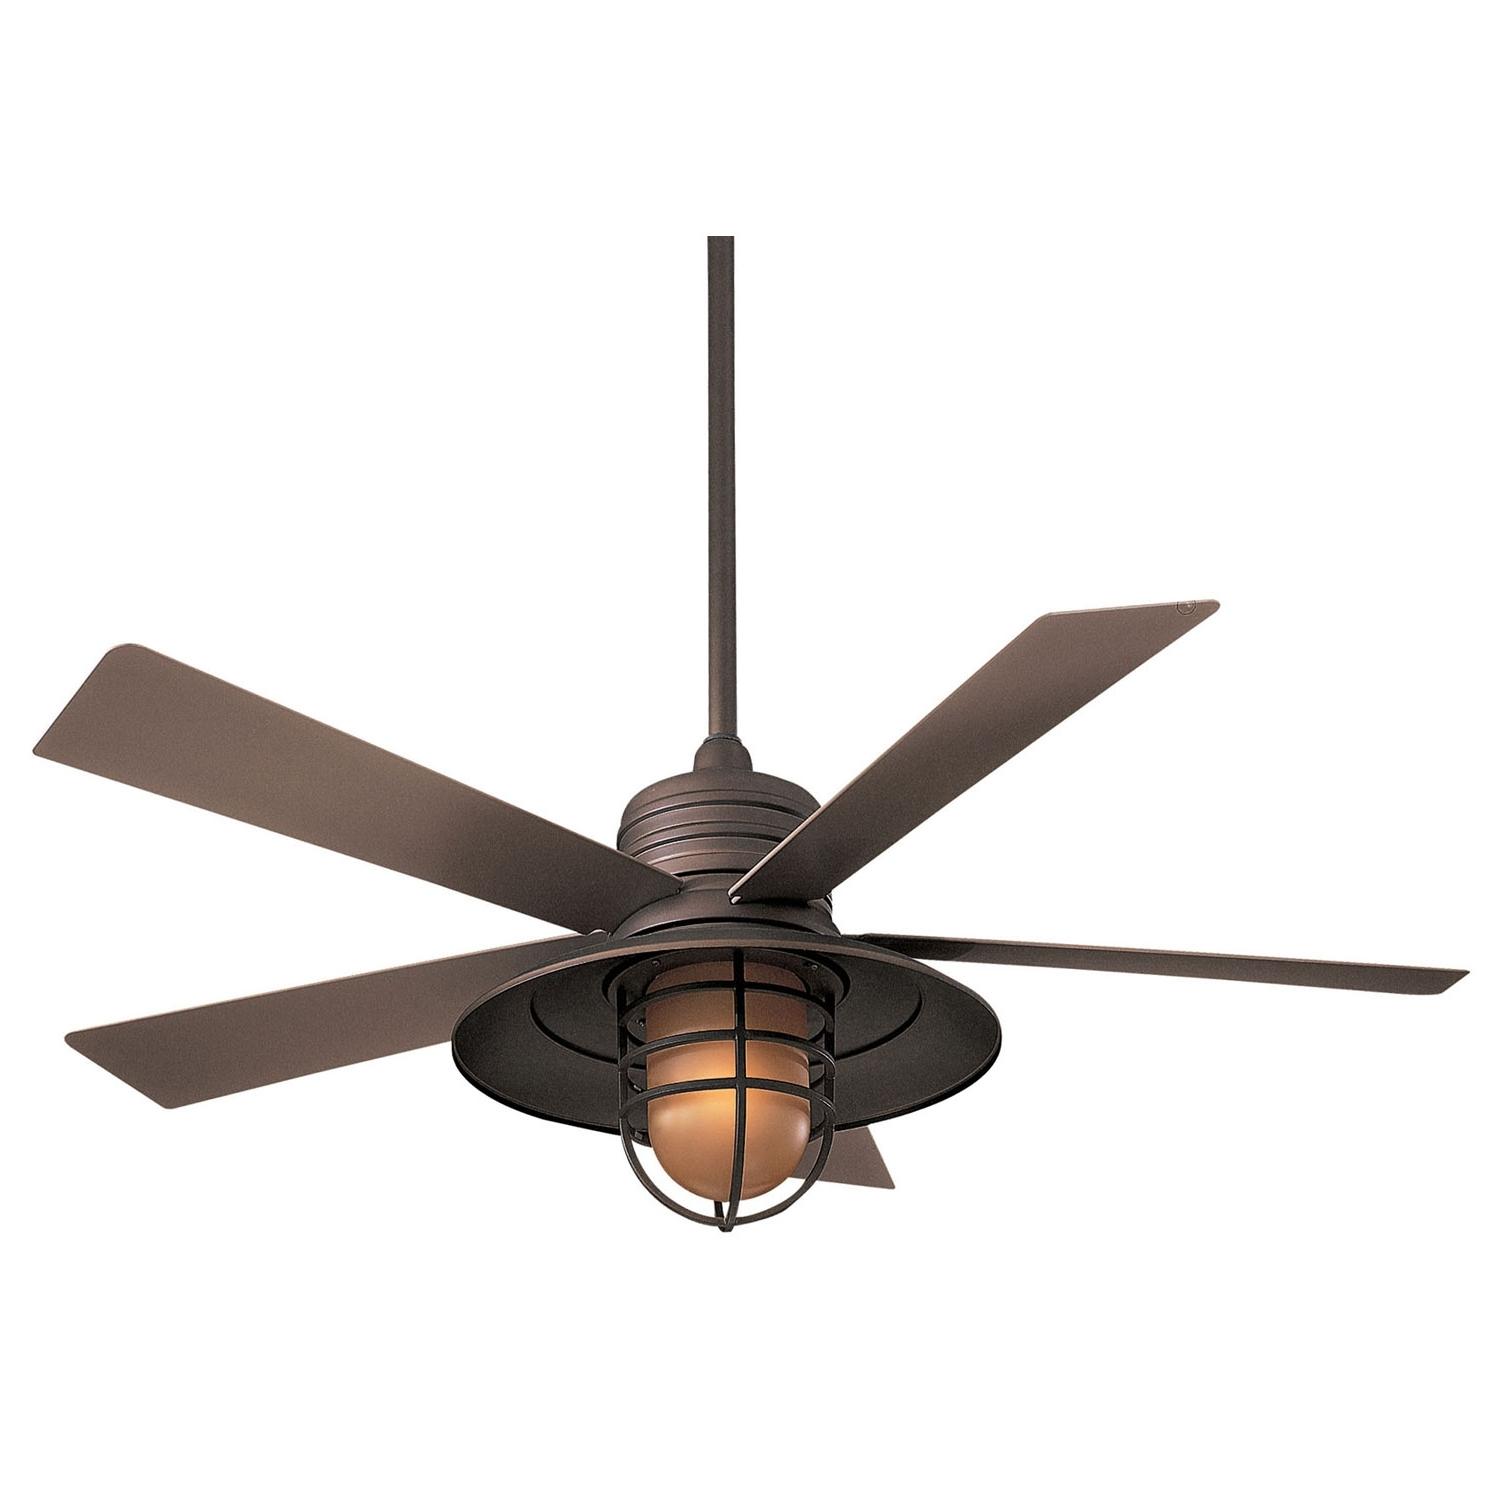 Minka Aire Rainman Oil Rubbed Bronze 54 Inch Blade Indoor/outdoor Regarding Most Popular Outdoor Ceiling Fans For Wet Locations (View 4 of 20)